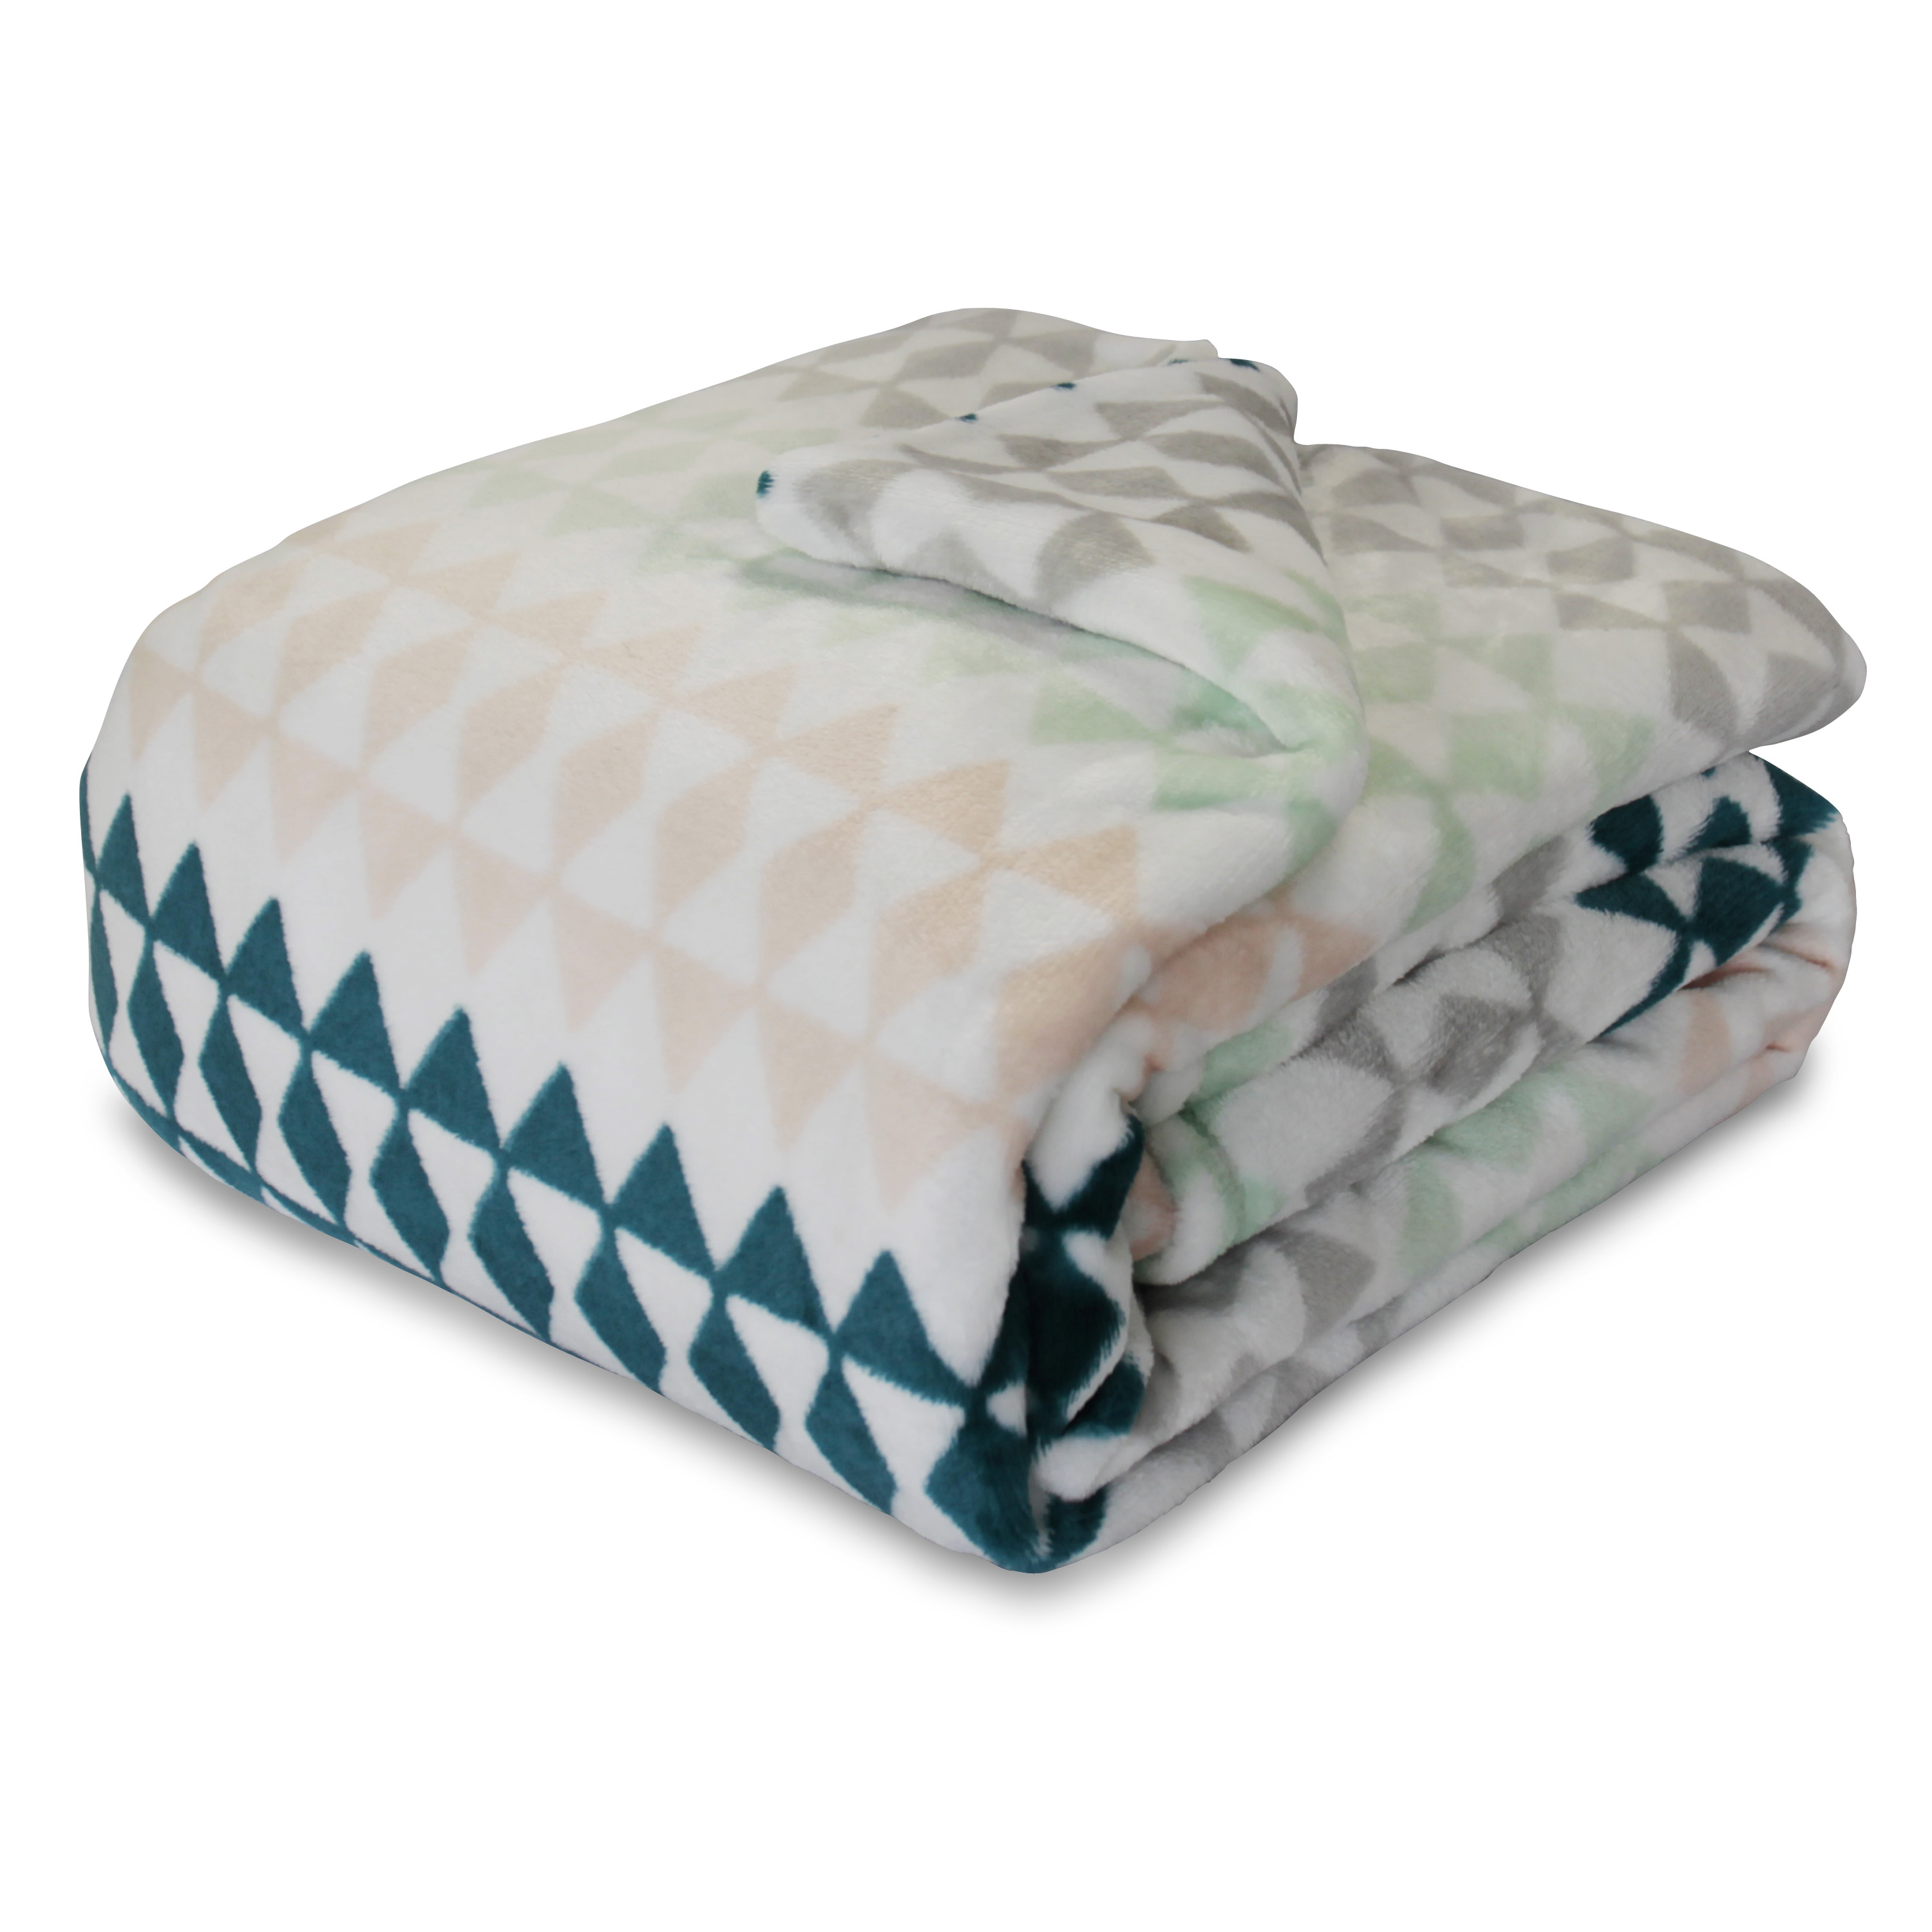 Mainstays Deluxe Plush Blanket, Multiple Sizes & Colors